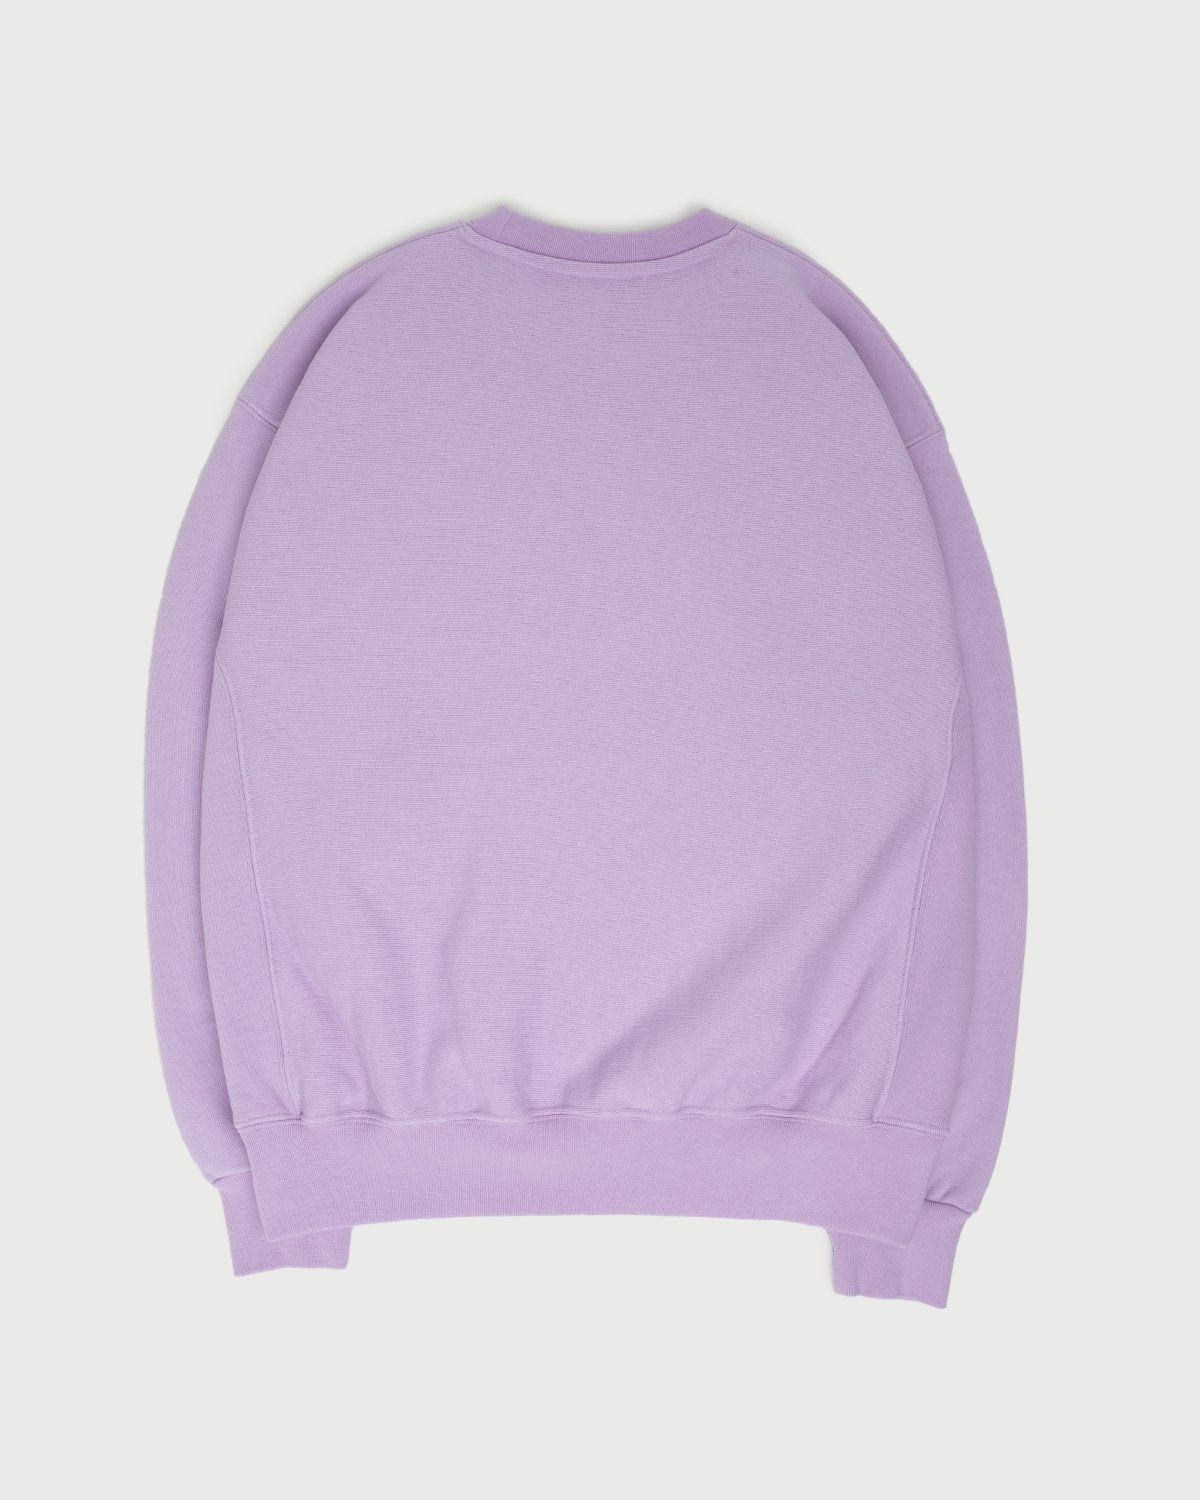 Aries — Embroidered Temple Sweatshirt Unisex Orchid - Image 3